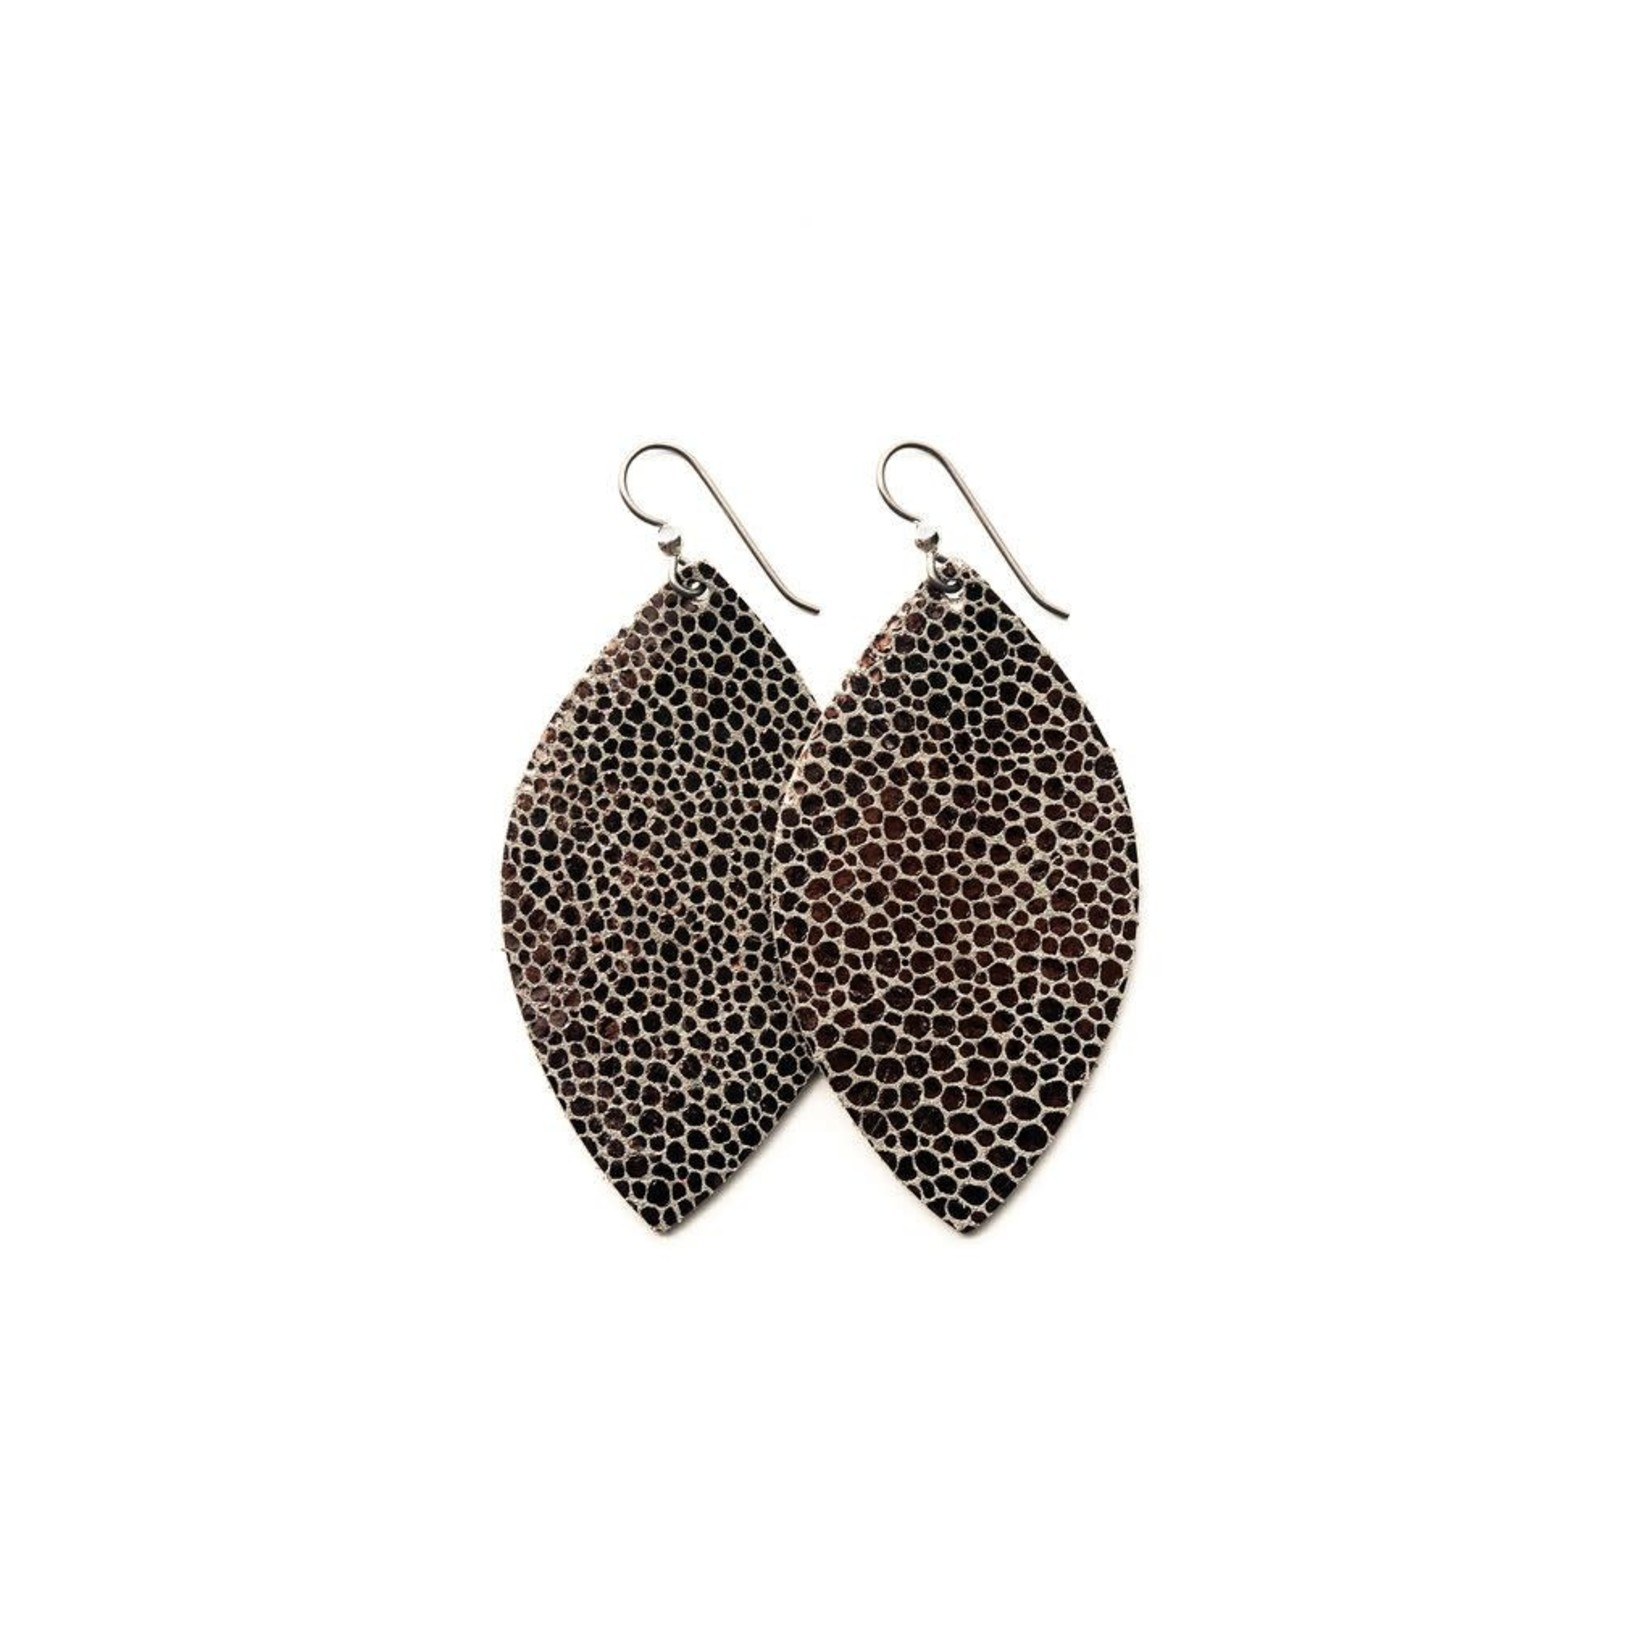 Keva Style Large Leather Speckled Anthracite Earrings